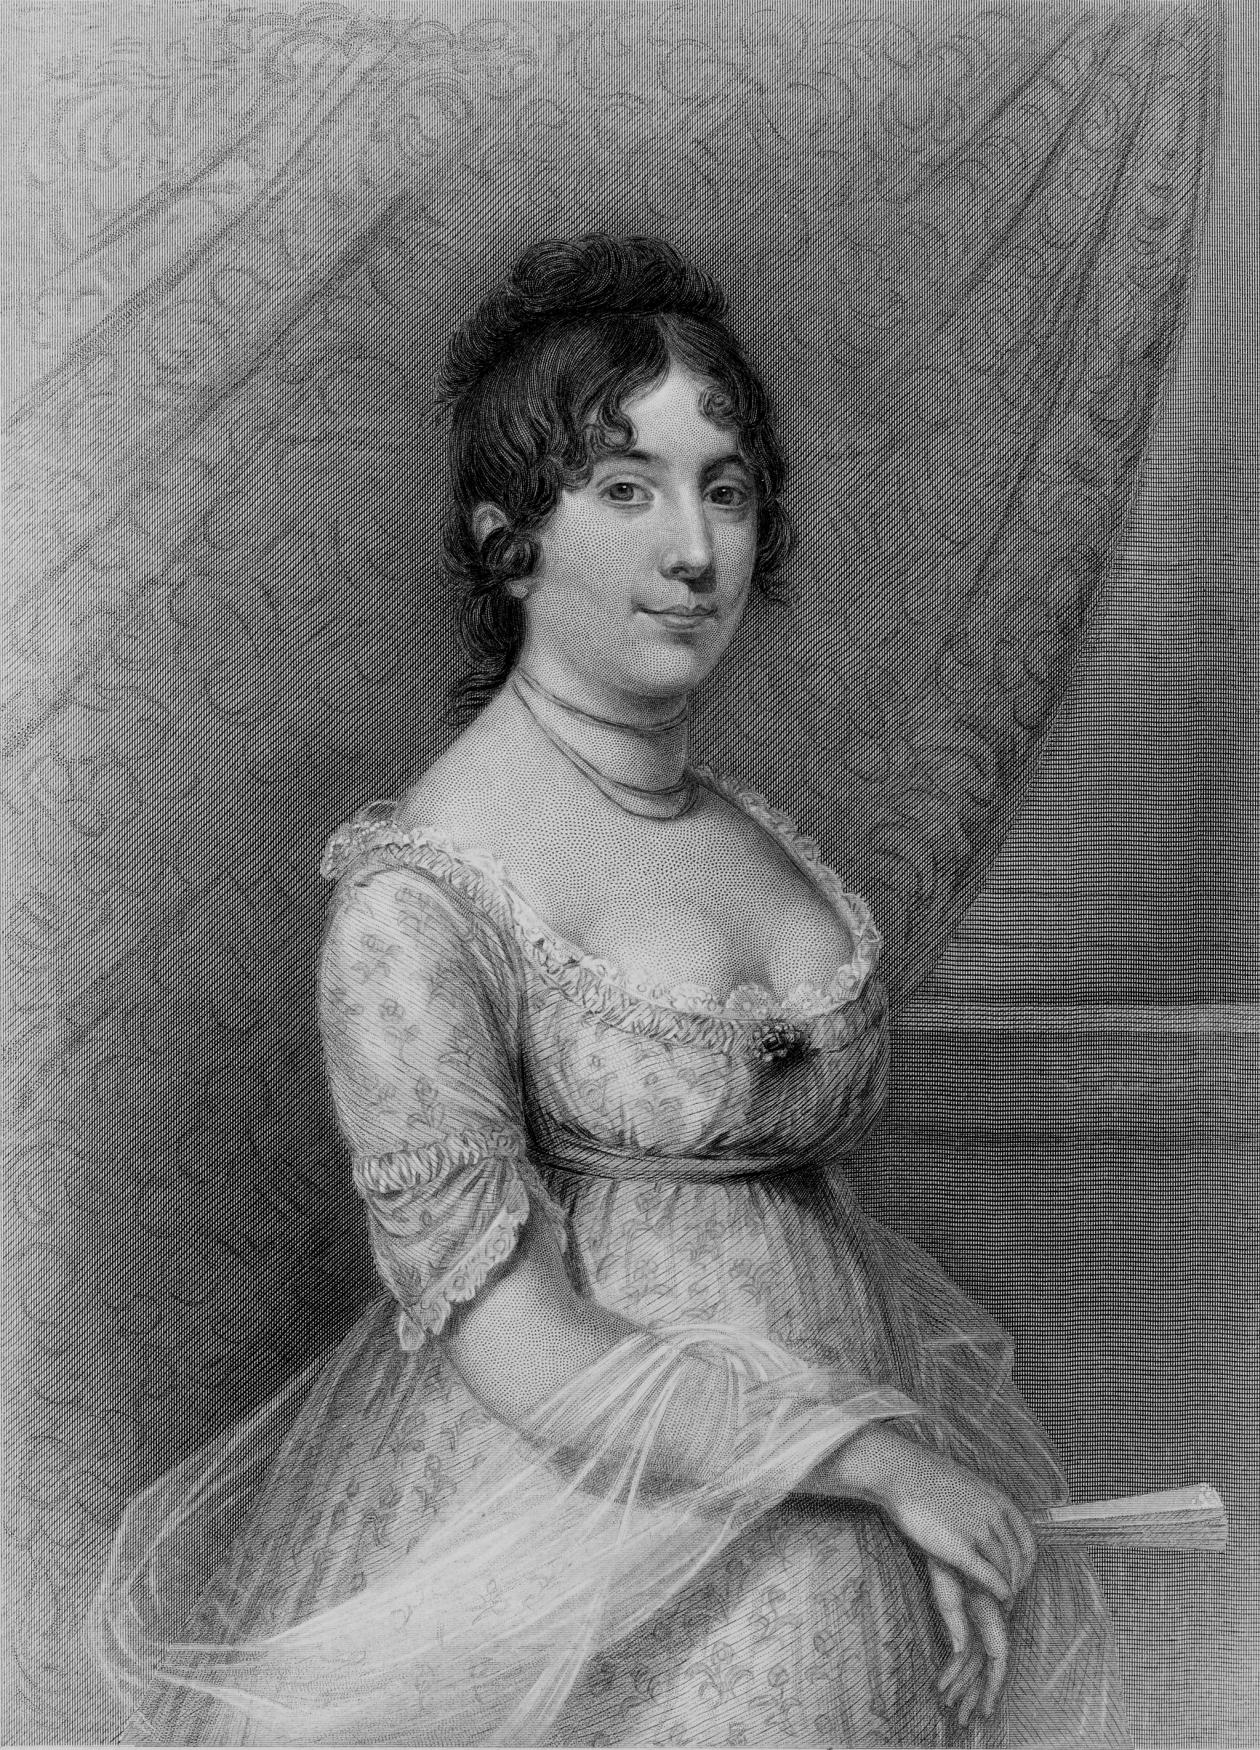 Dolley, seated, holding a fan, wearing a white lace dress with a scoop neckline